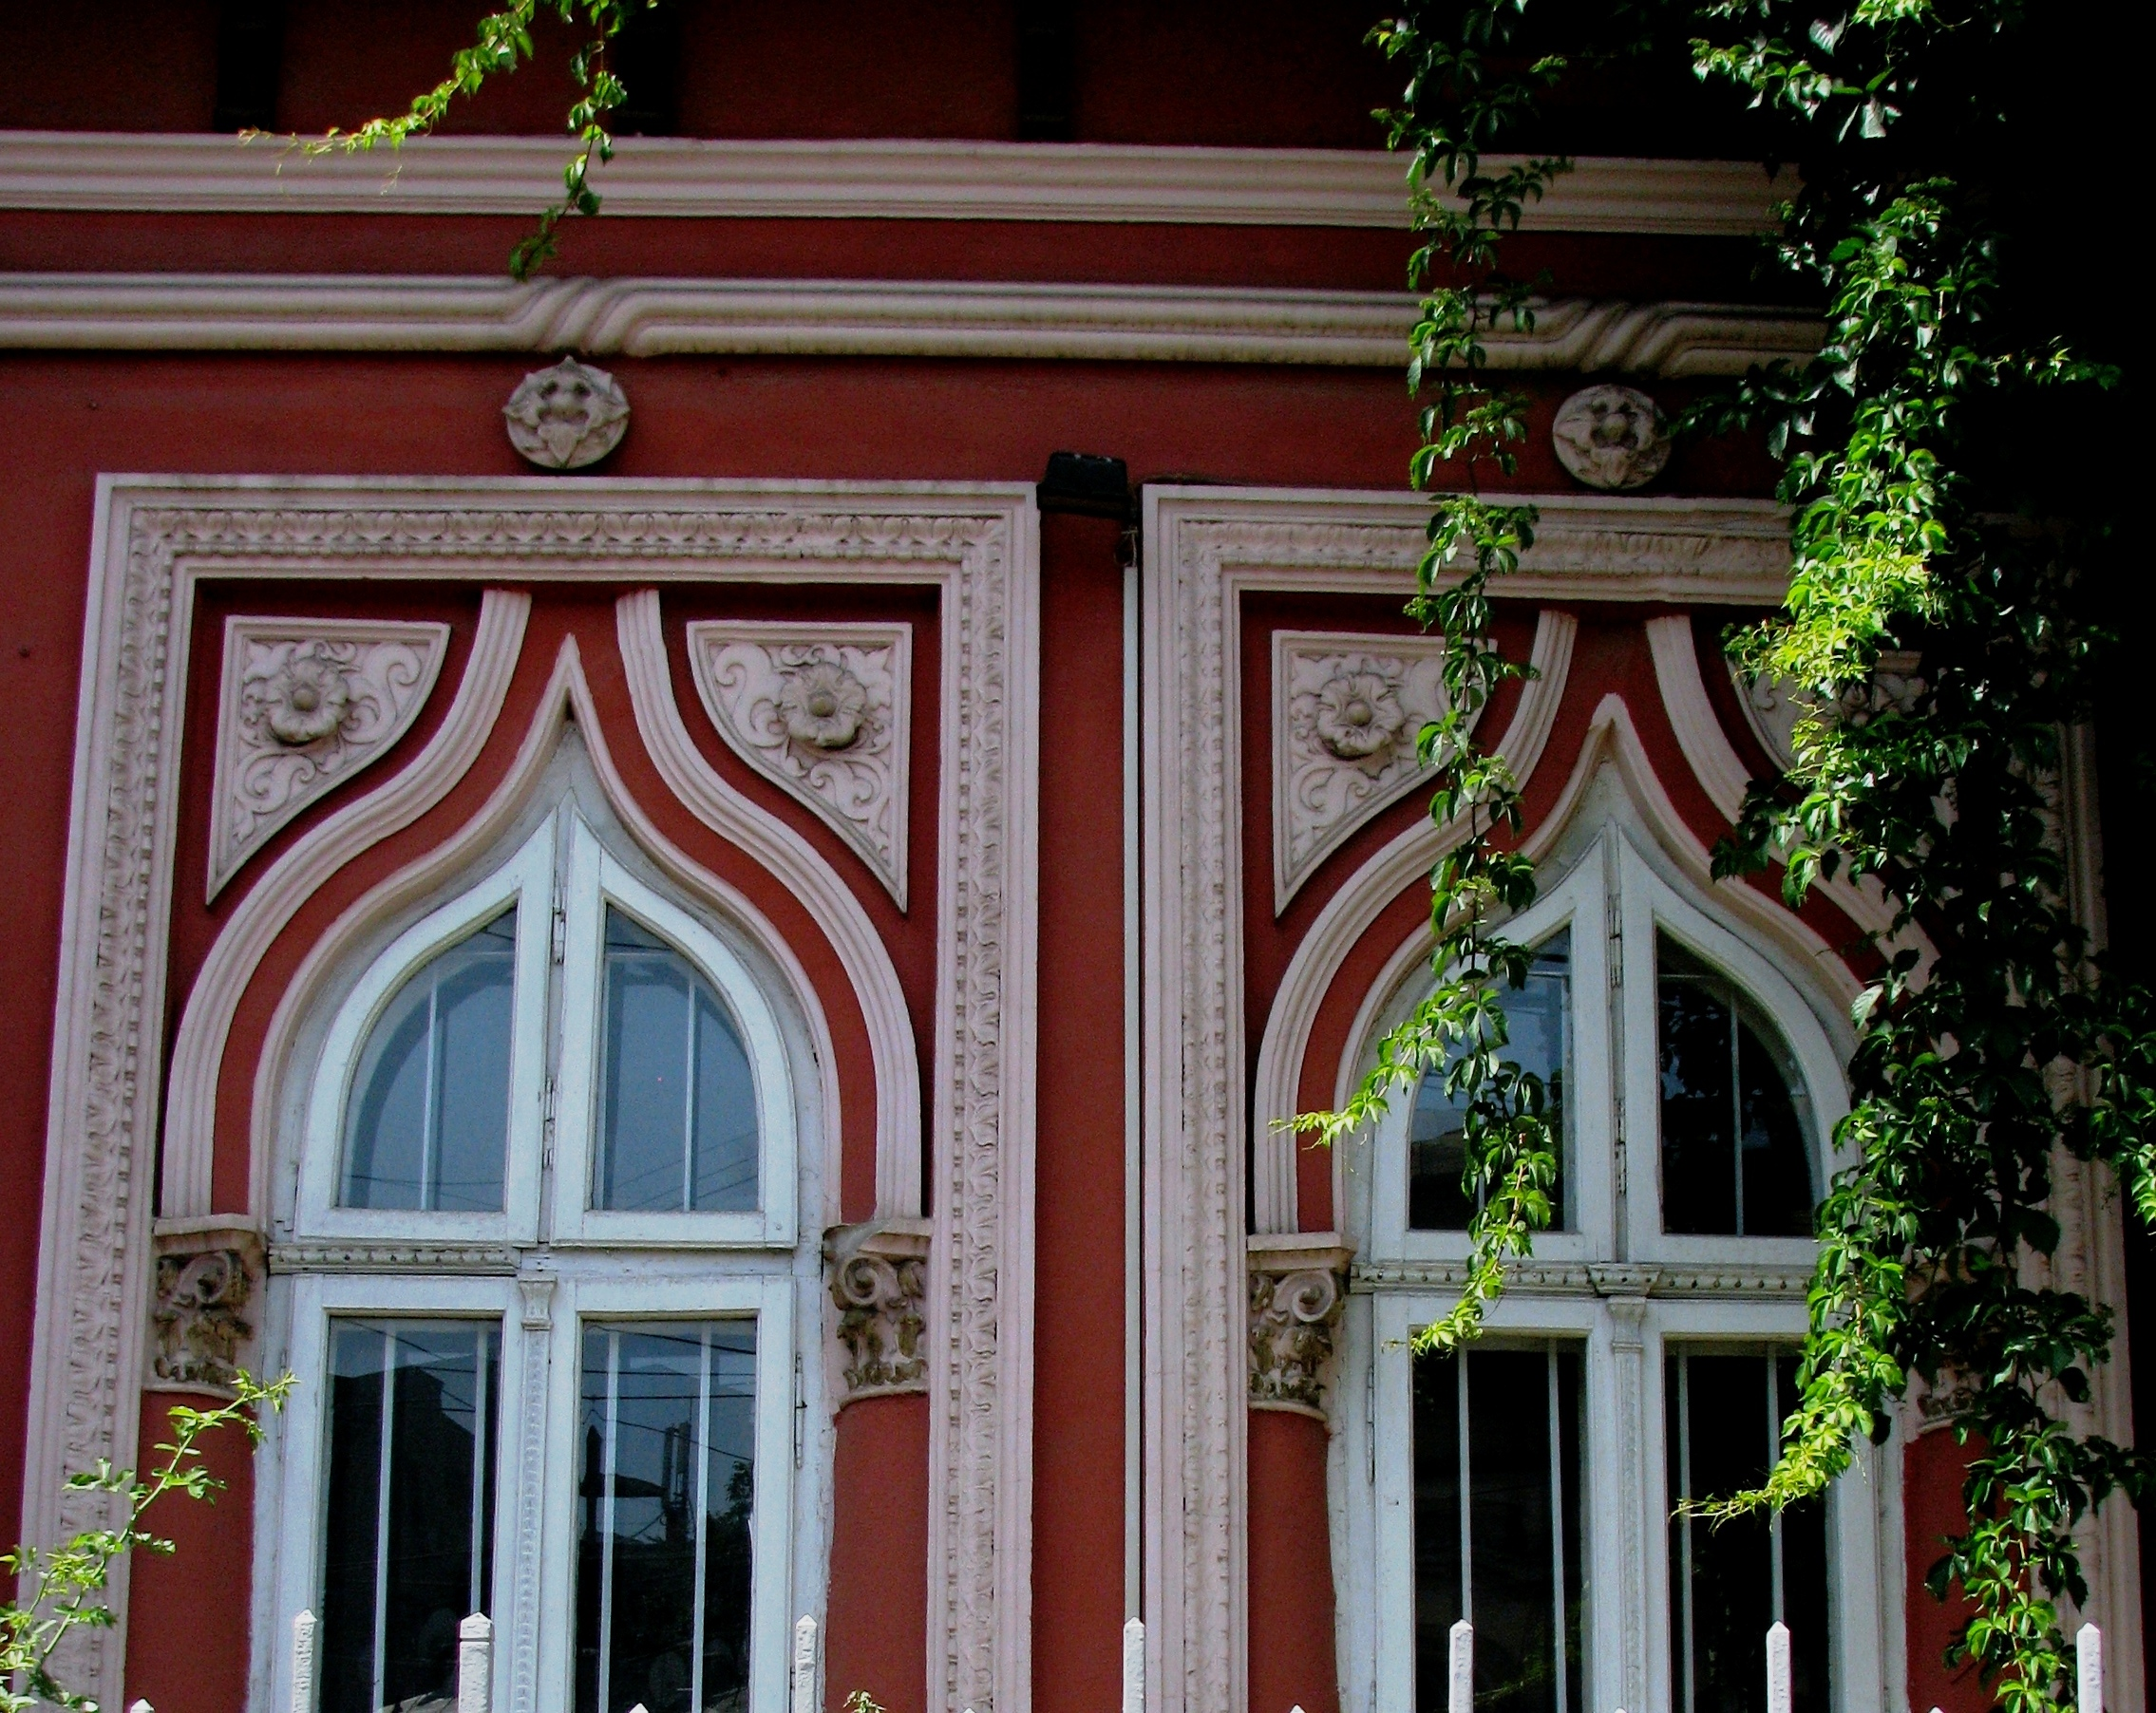 House window styles - Early Neo Romanian Style Windows With Pointed Arches Bucharest